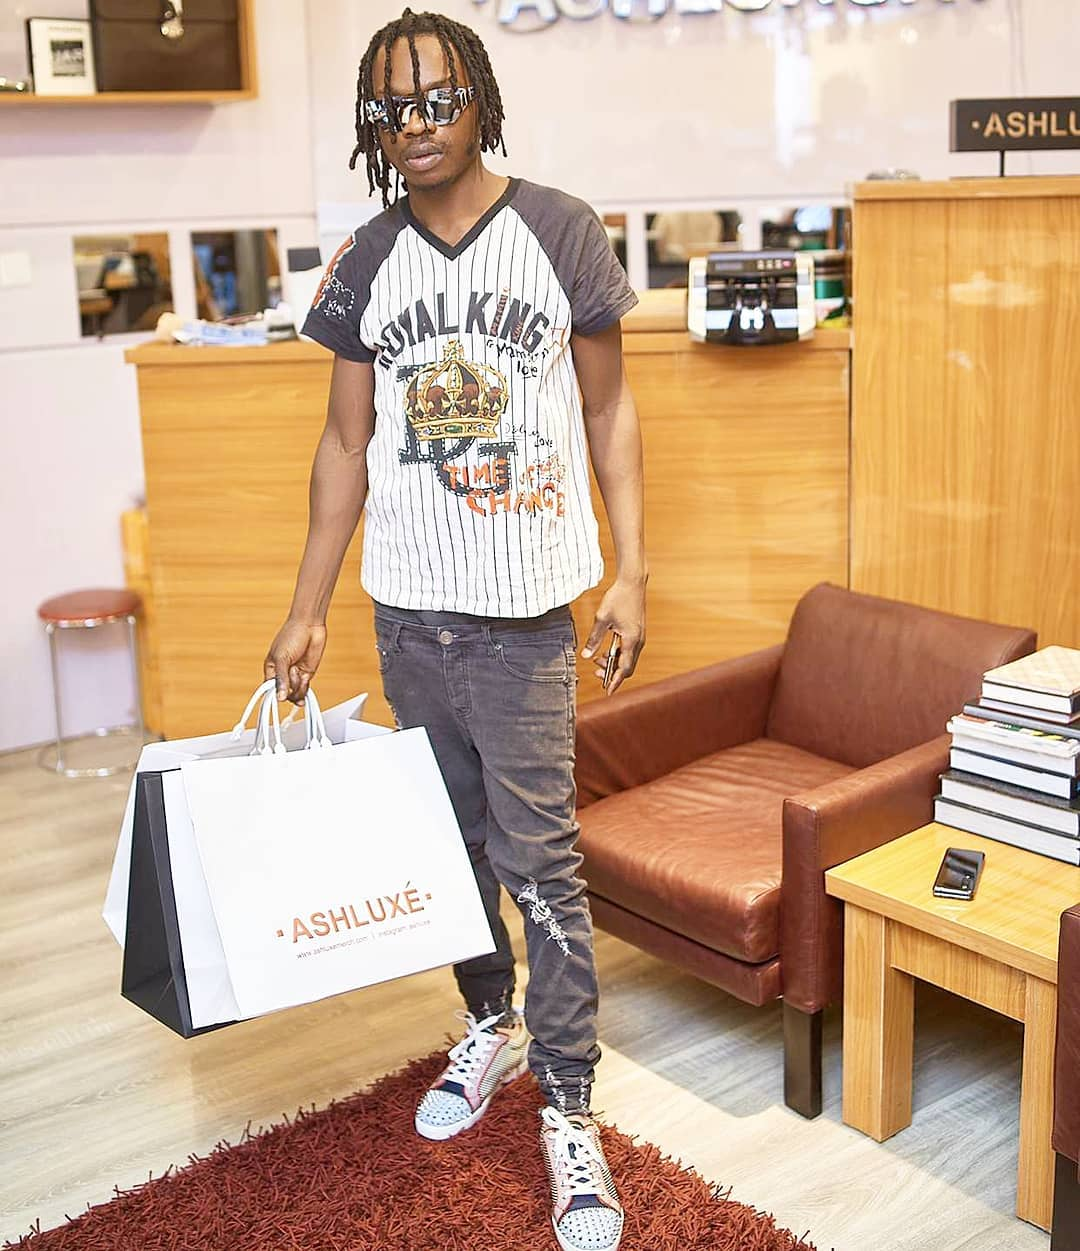 Naira Marley is a graduate with B.A & Msc but his fans keep shouting 'Marlians no dey graduate' – Lady writes